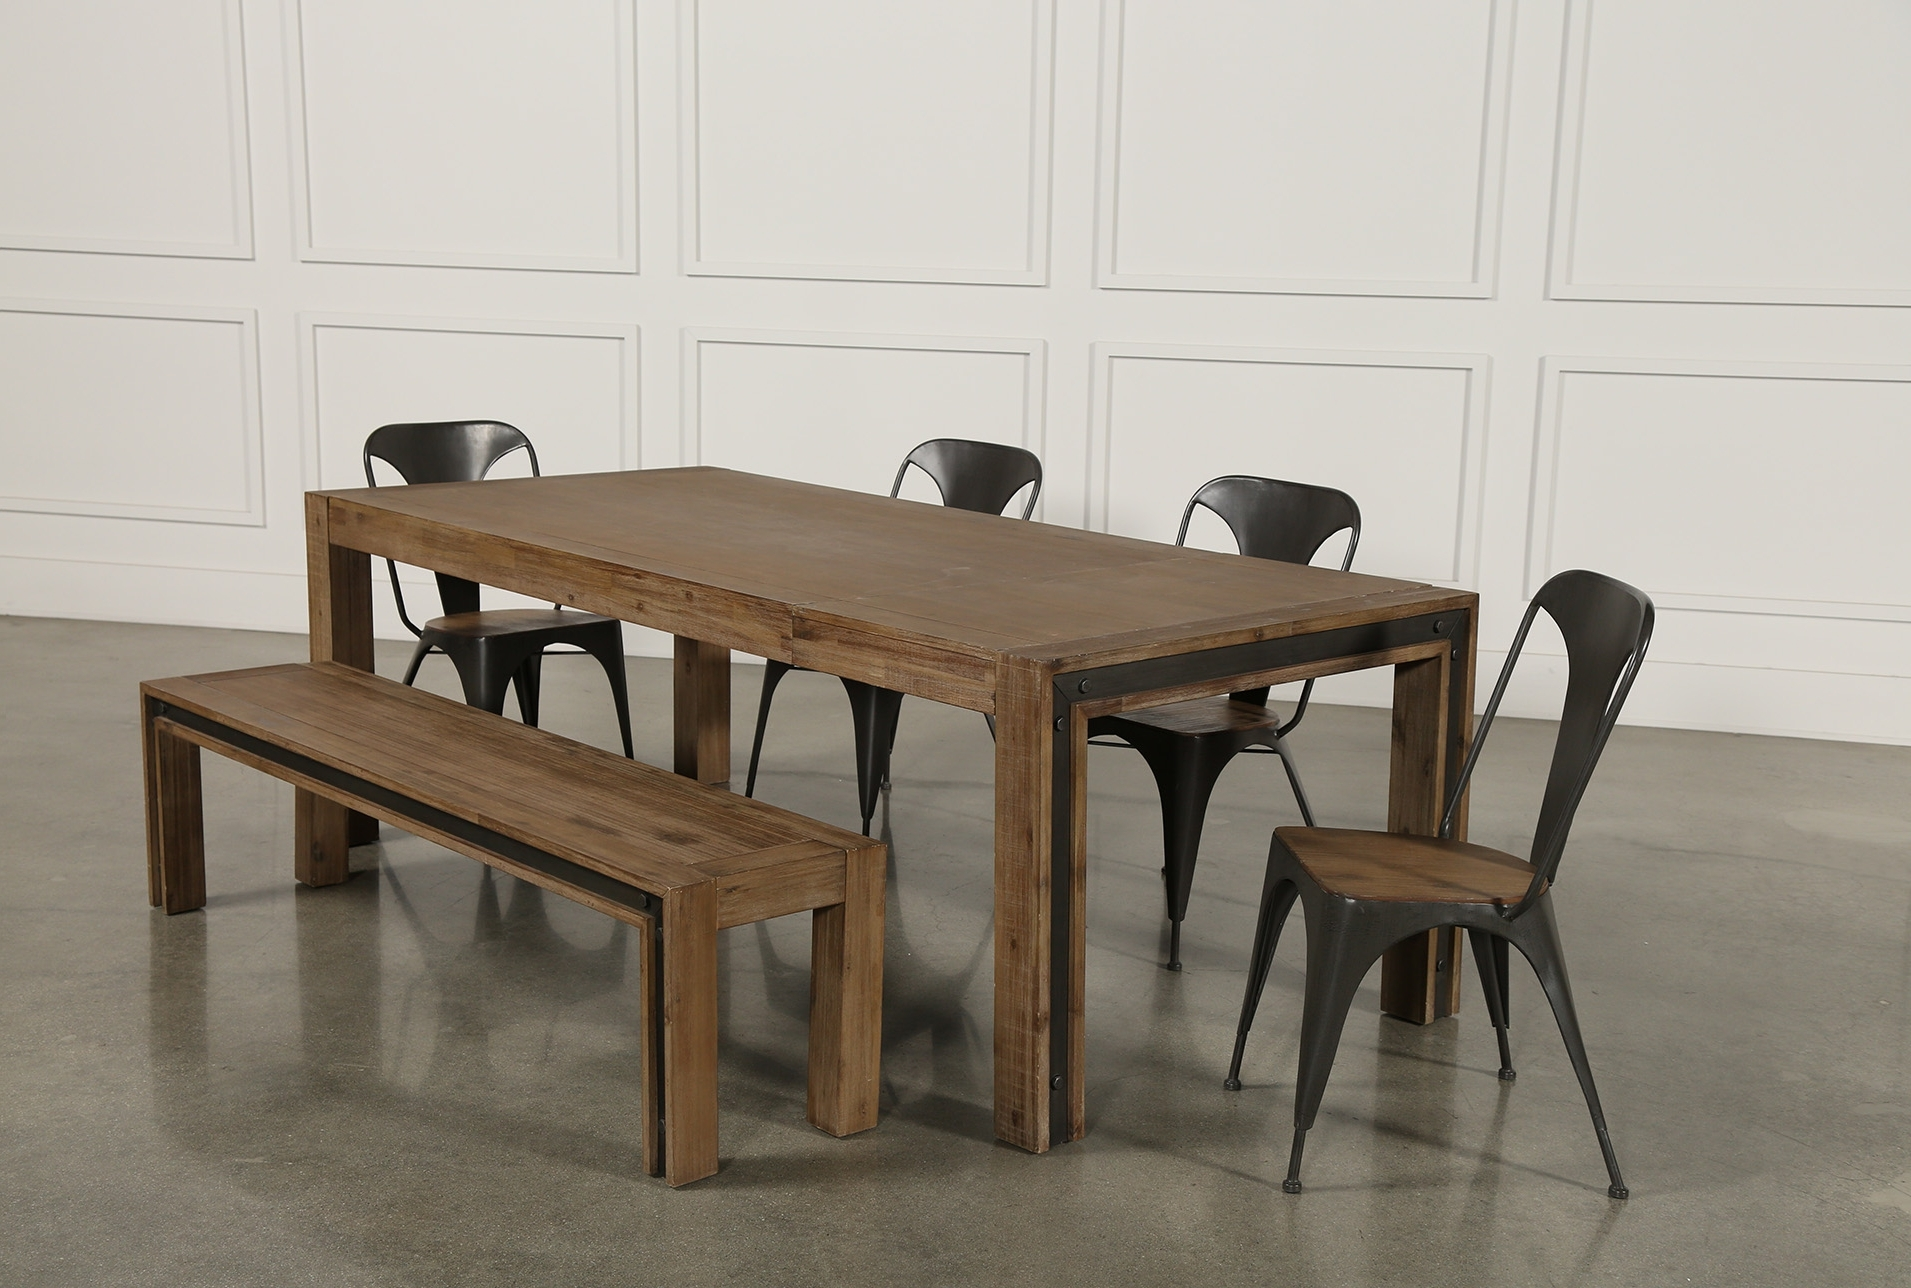 Amos Extension Dining Tables Regarding 2018 Amos 6 Piece Extension Dining Set (Gallery 3 of 25)